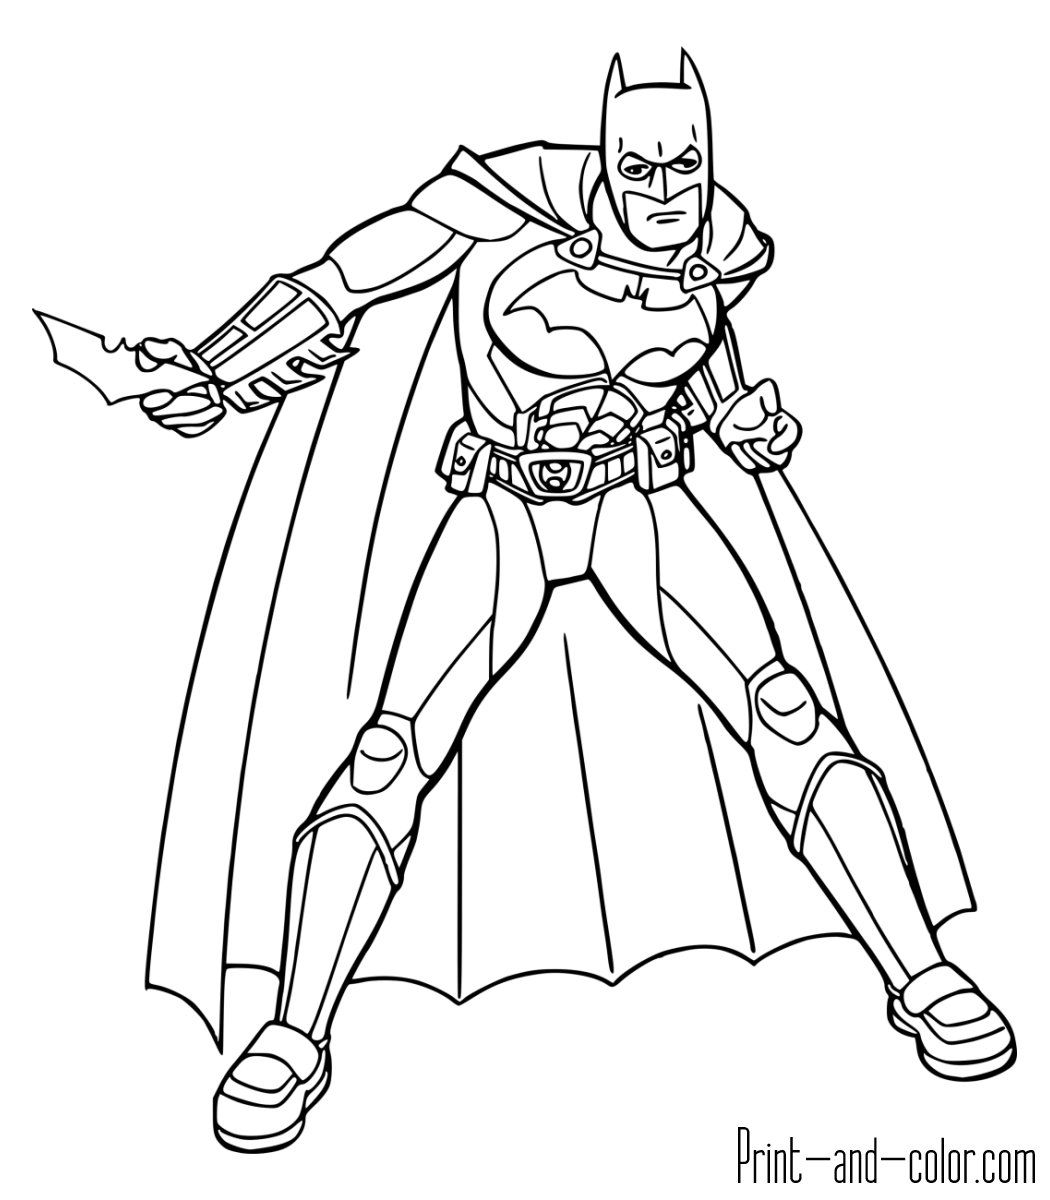 1050x1200 Batman Coloring Pages Print